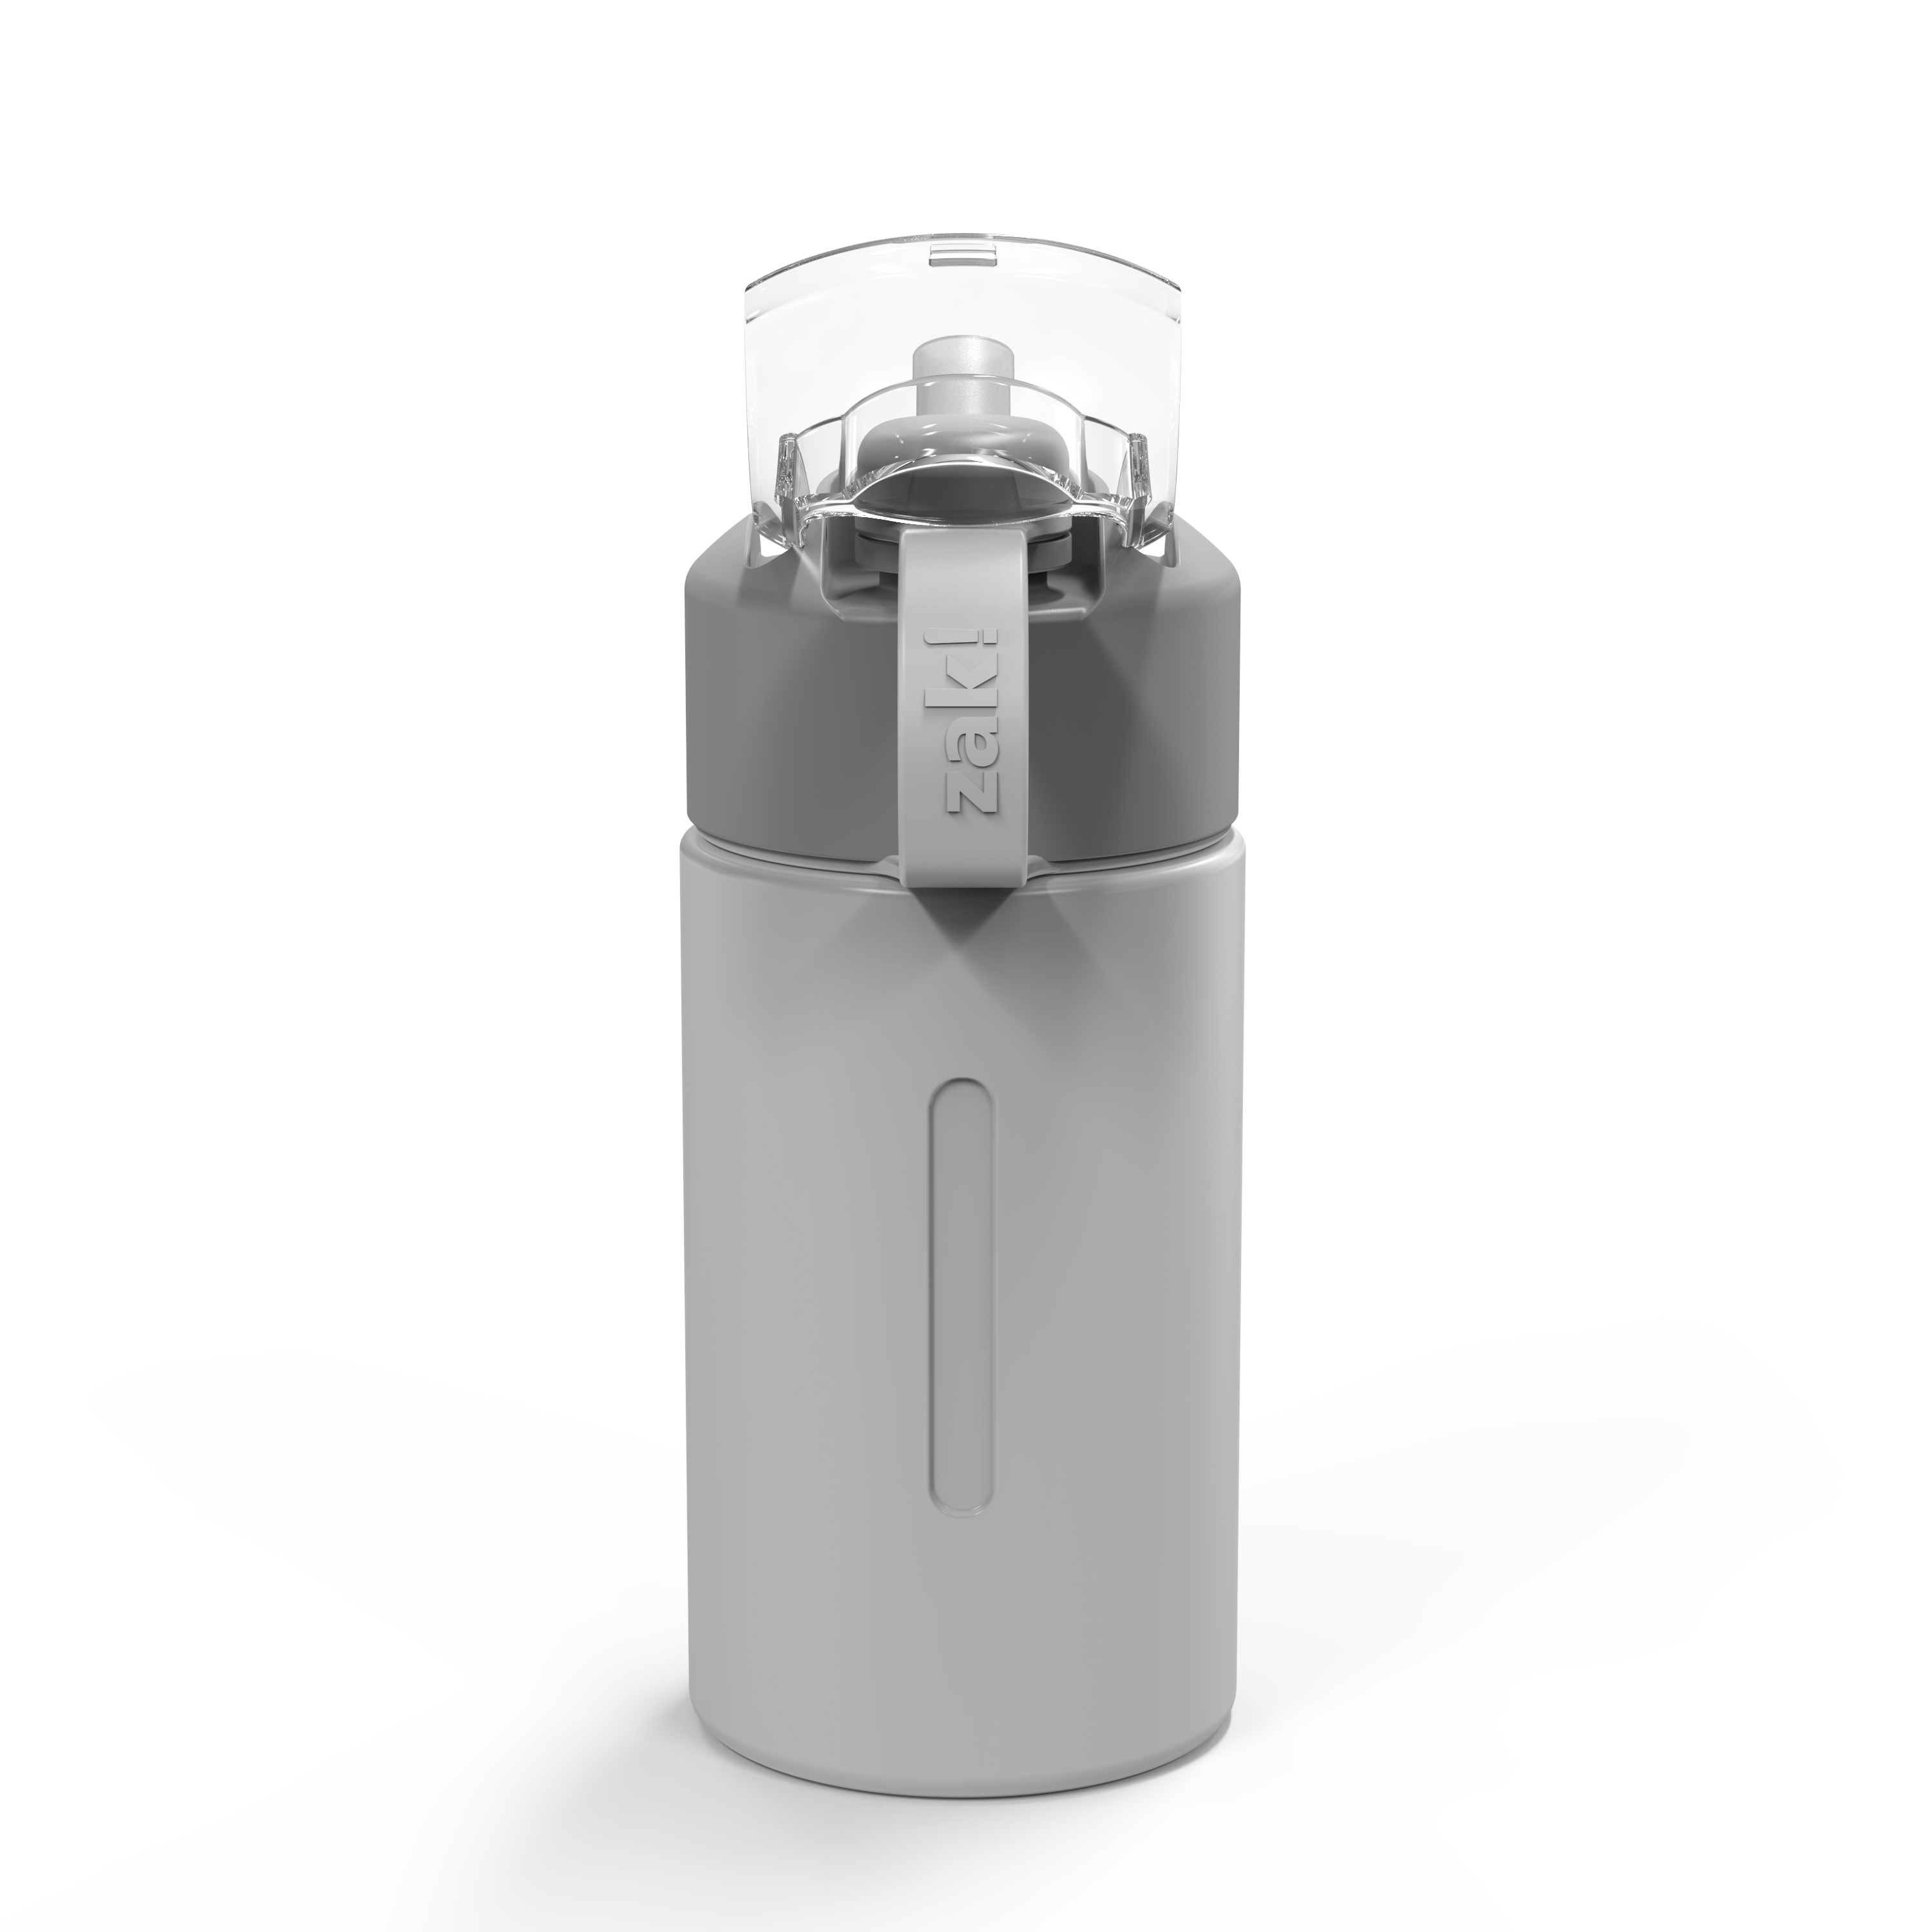 Genesis 12 ounce Vacuum Insulated Stainless Steel Tumbler, Gray slideshow image 6